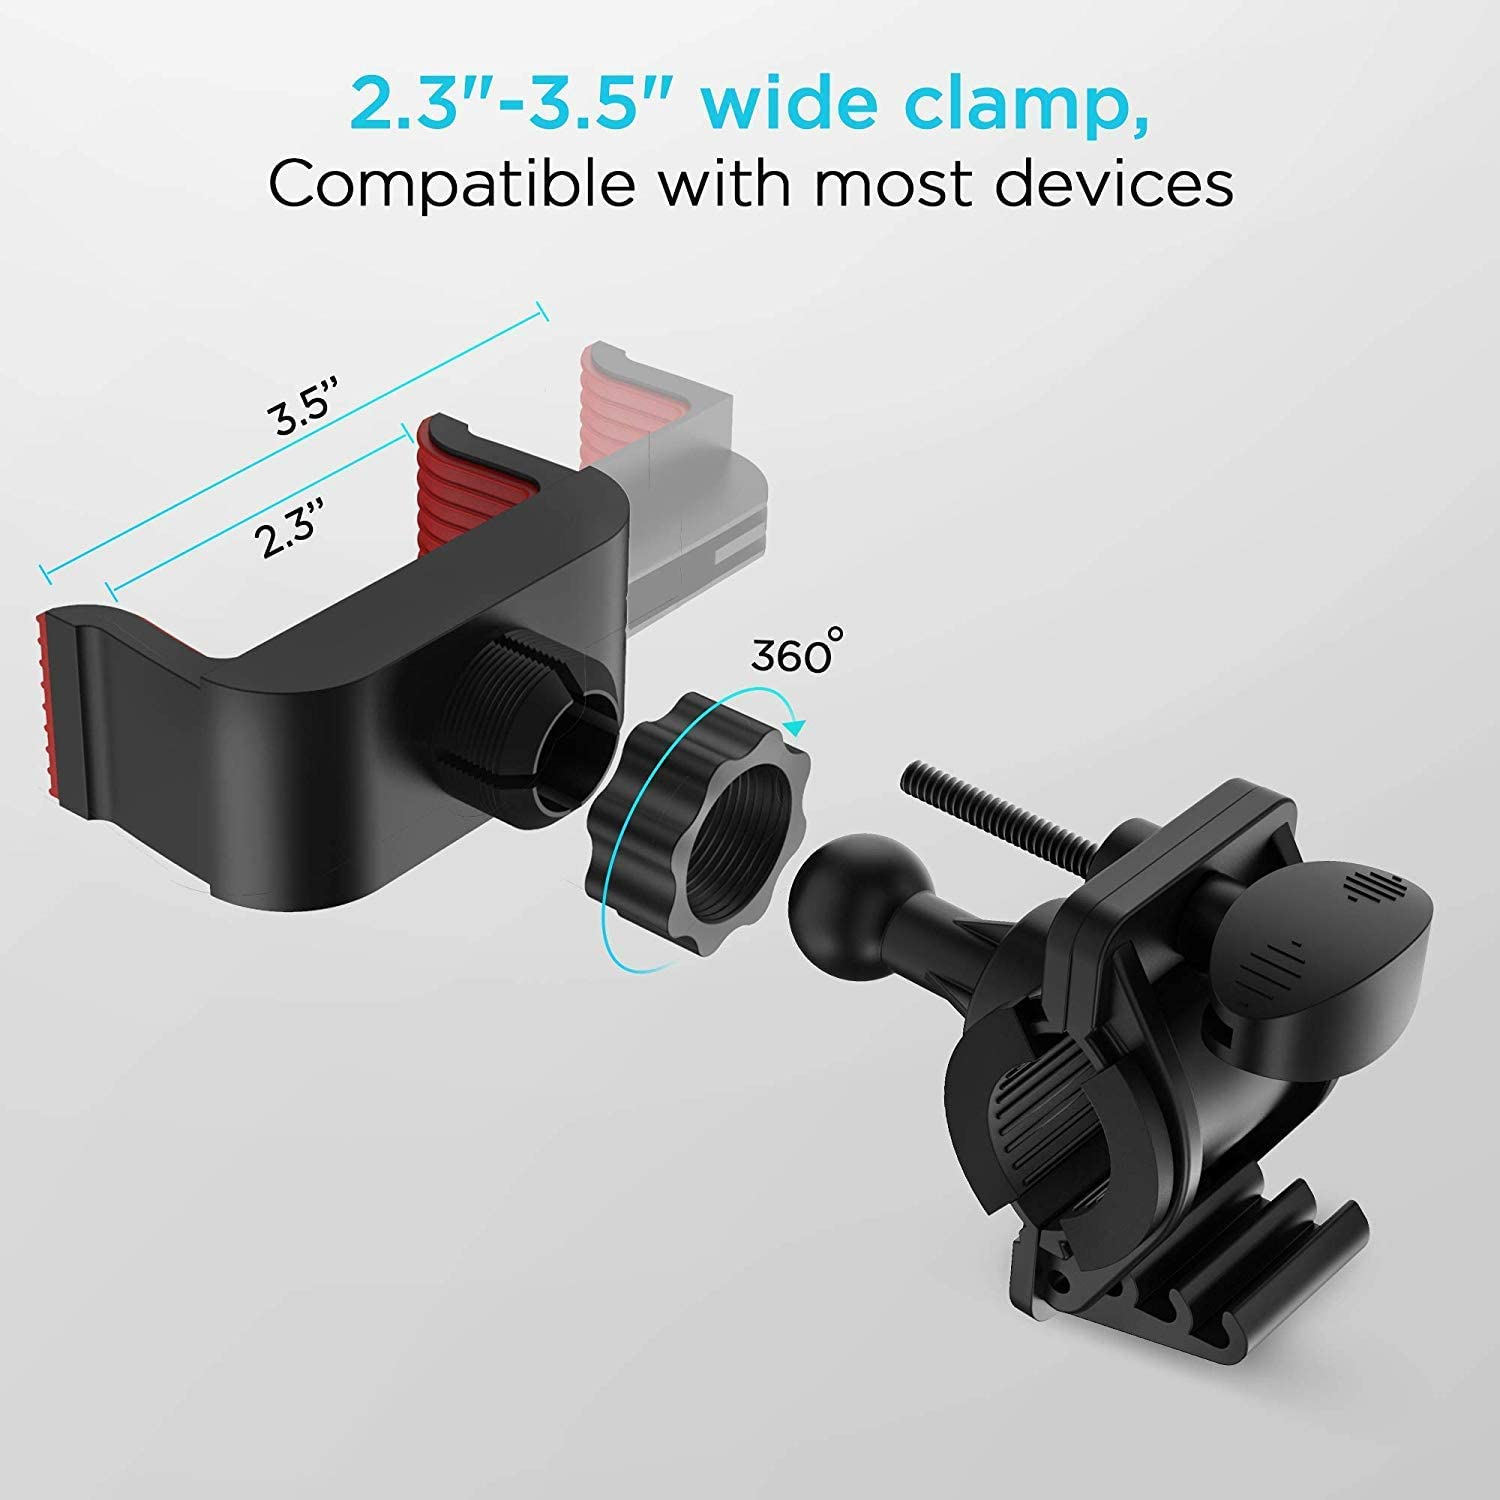 Universal Cell Phone Bicycle Rack Handlebar /& Motorcycle Holder Cradle Compatible with All Cellphones Smartphones Bike Mount Black